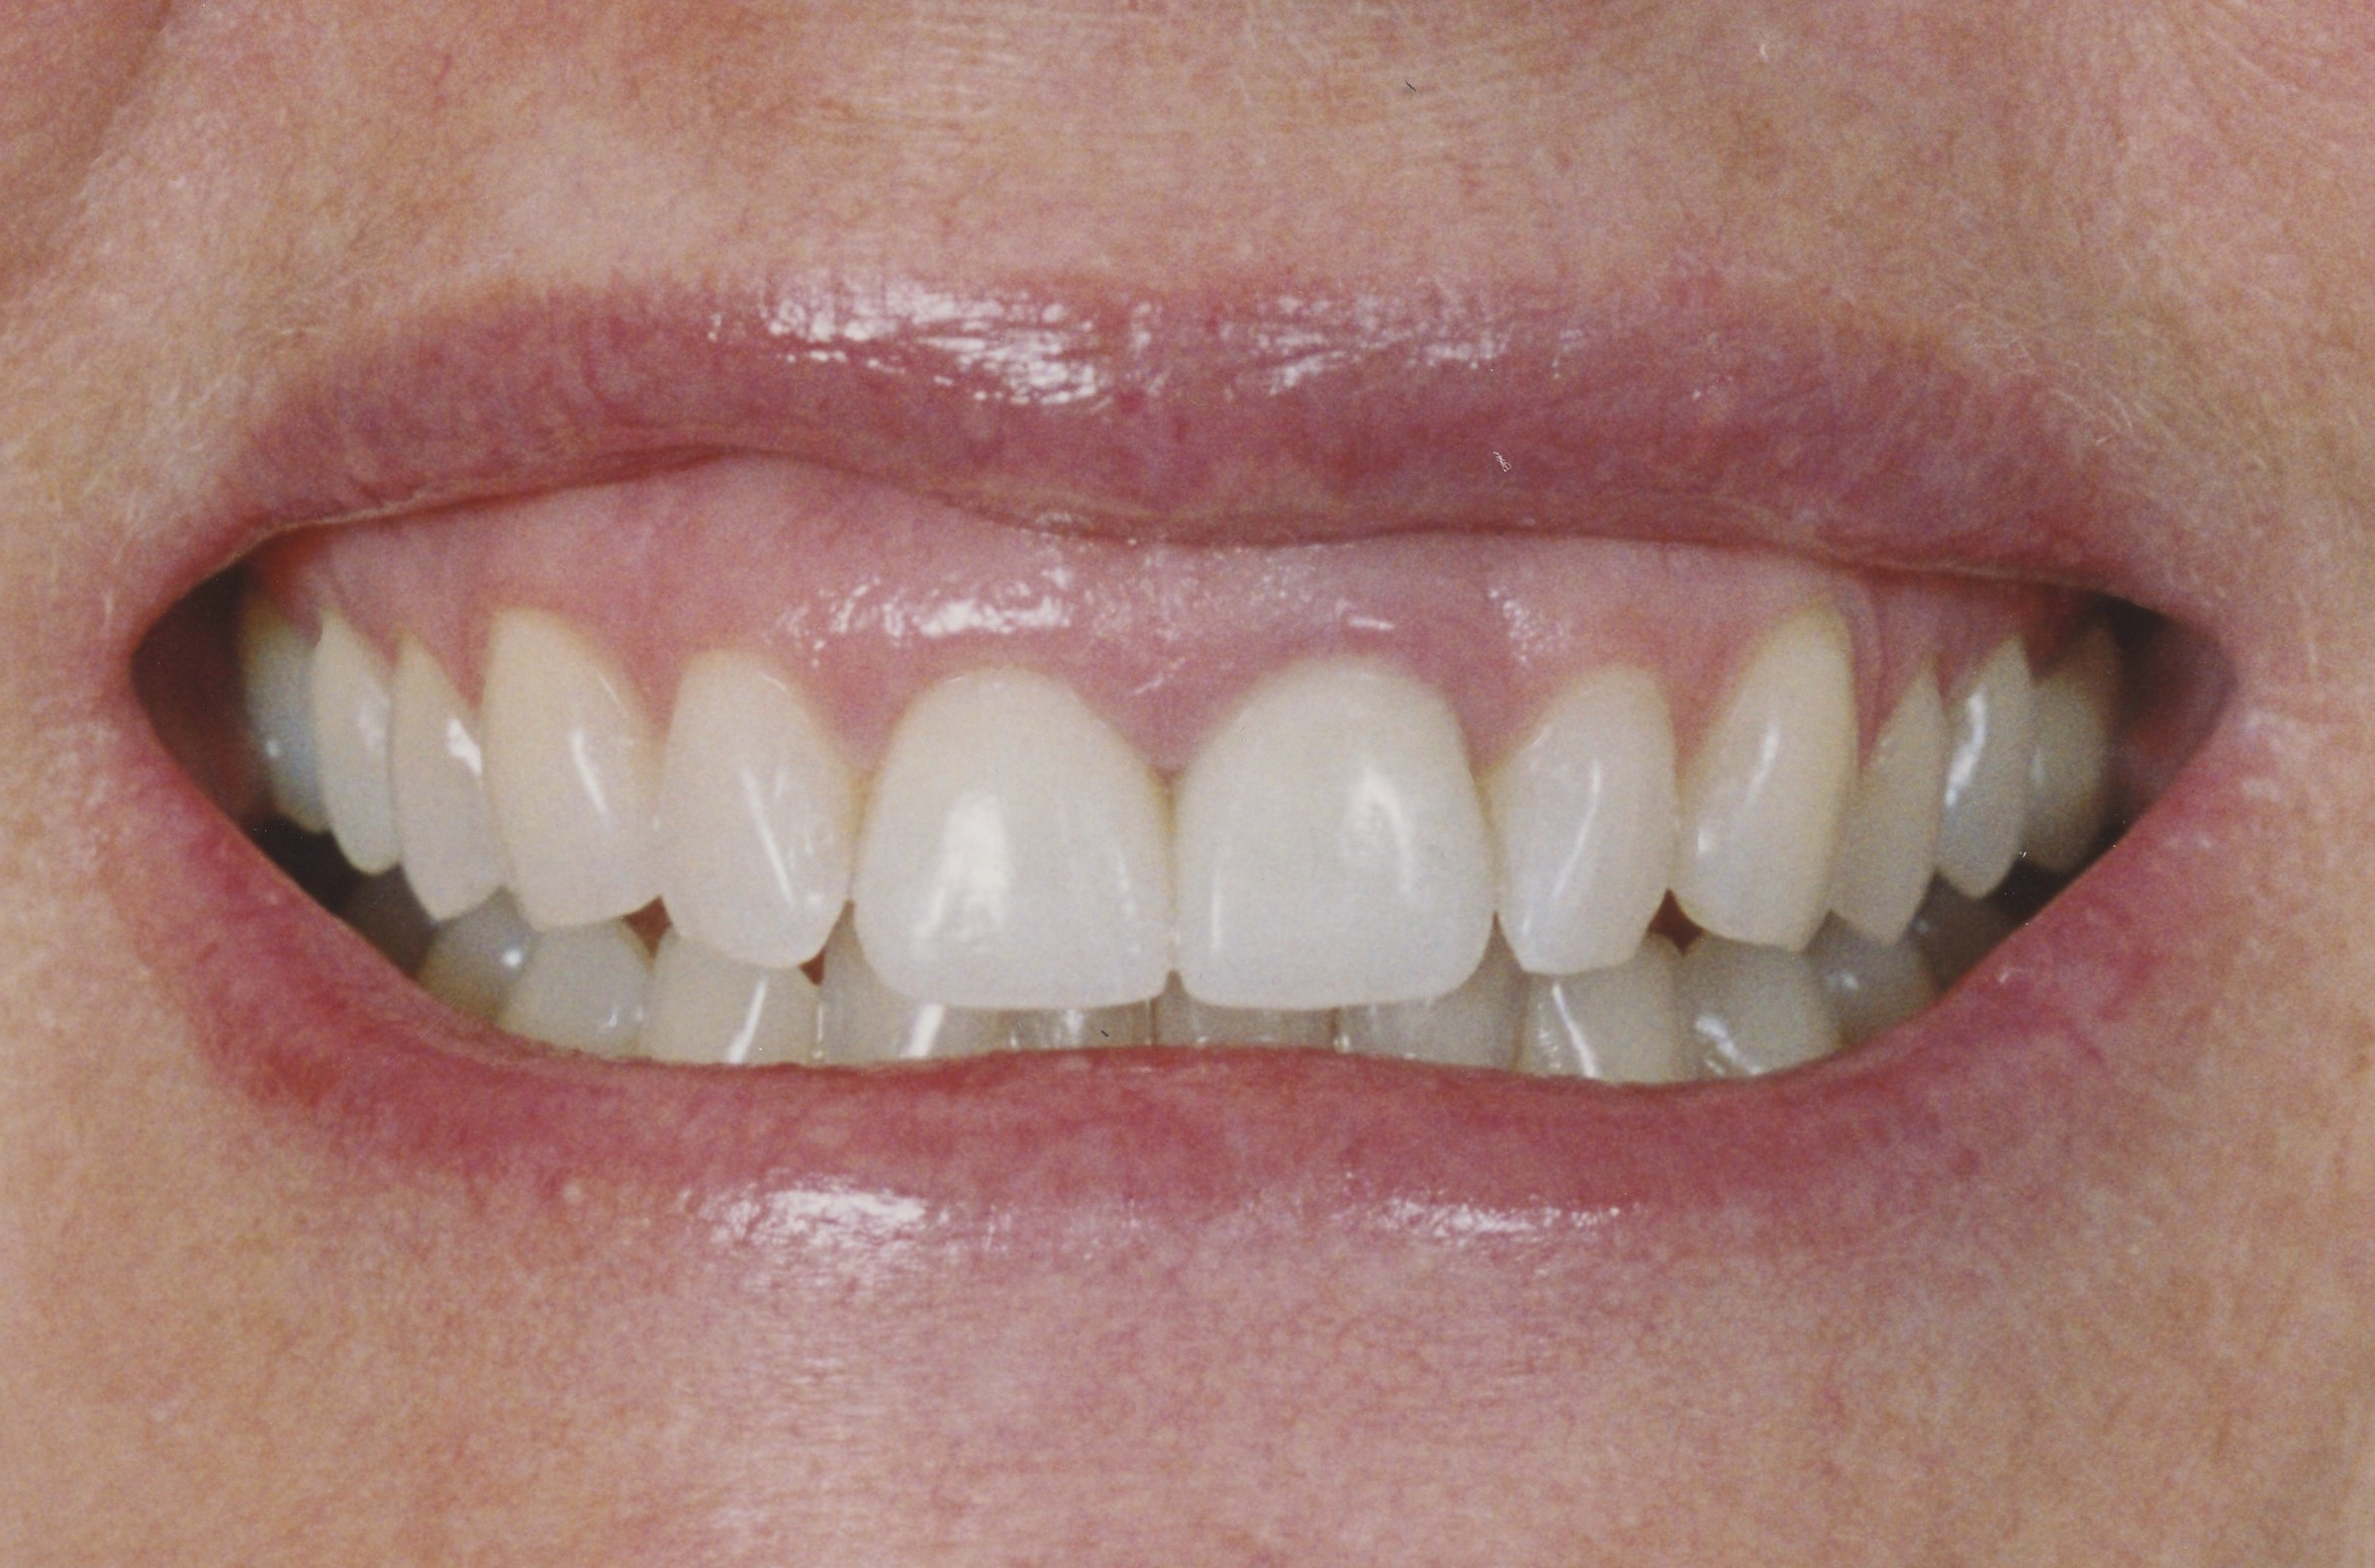 J.P. with some beautiful new, natural looking porcelain crowns